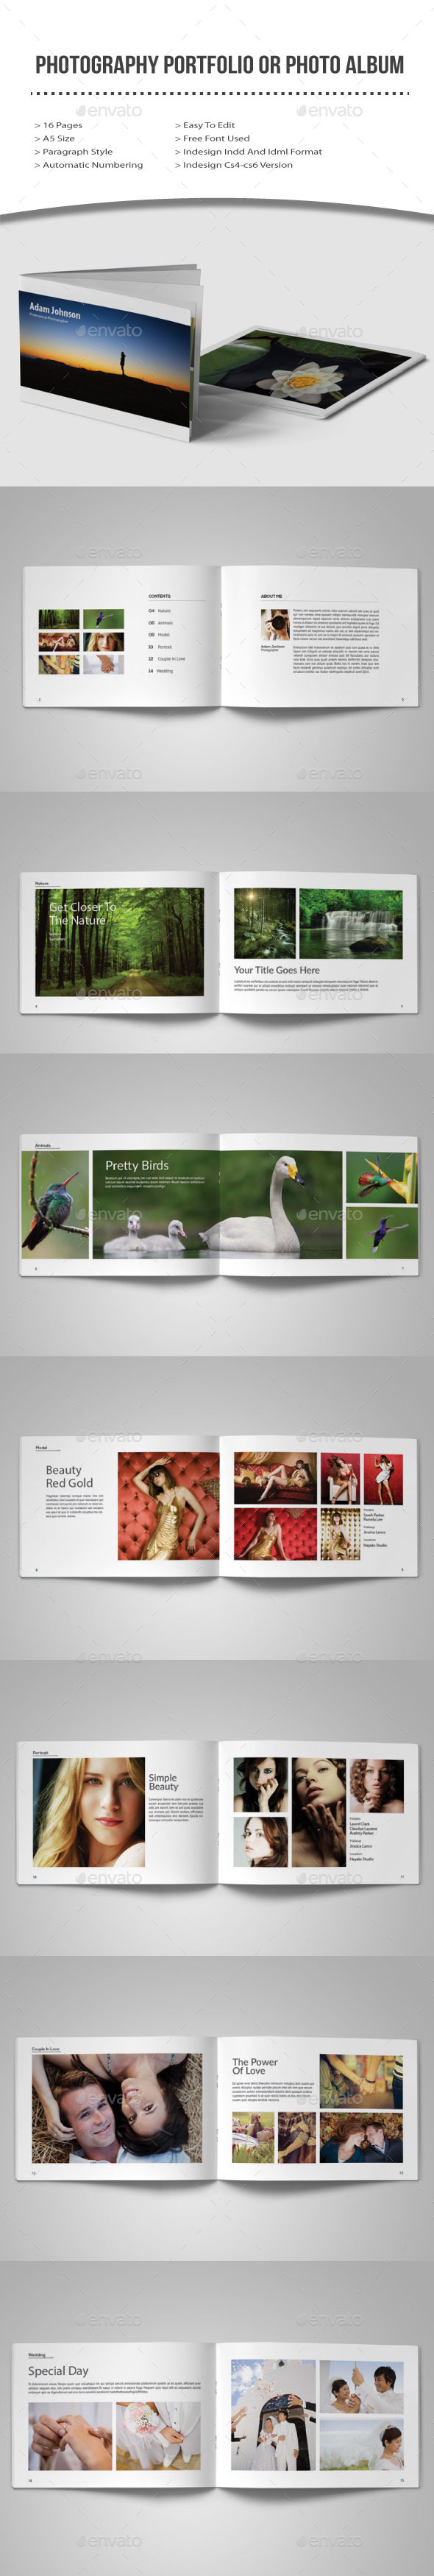 GraphicRiver Photography Portfolio or Photo Album 10322188